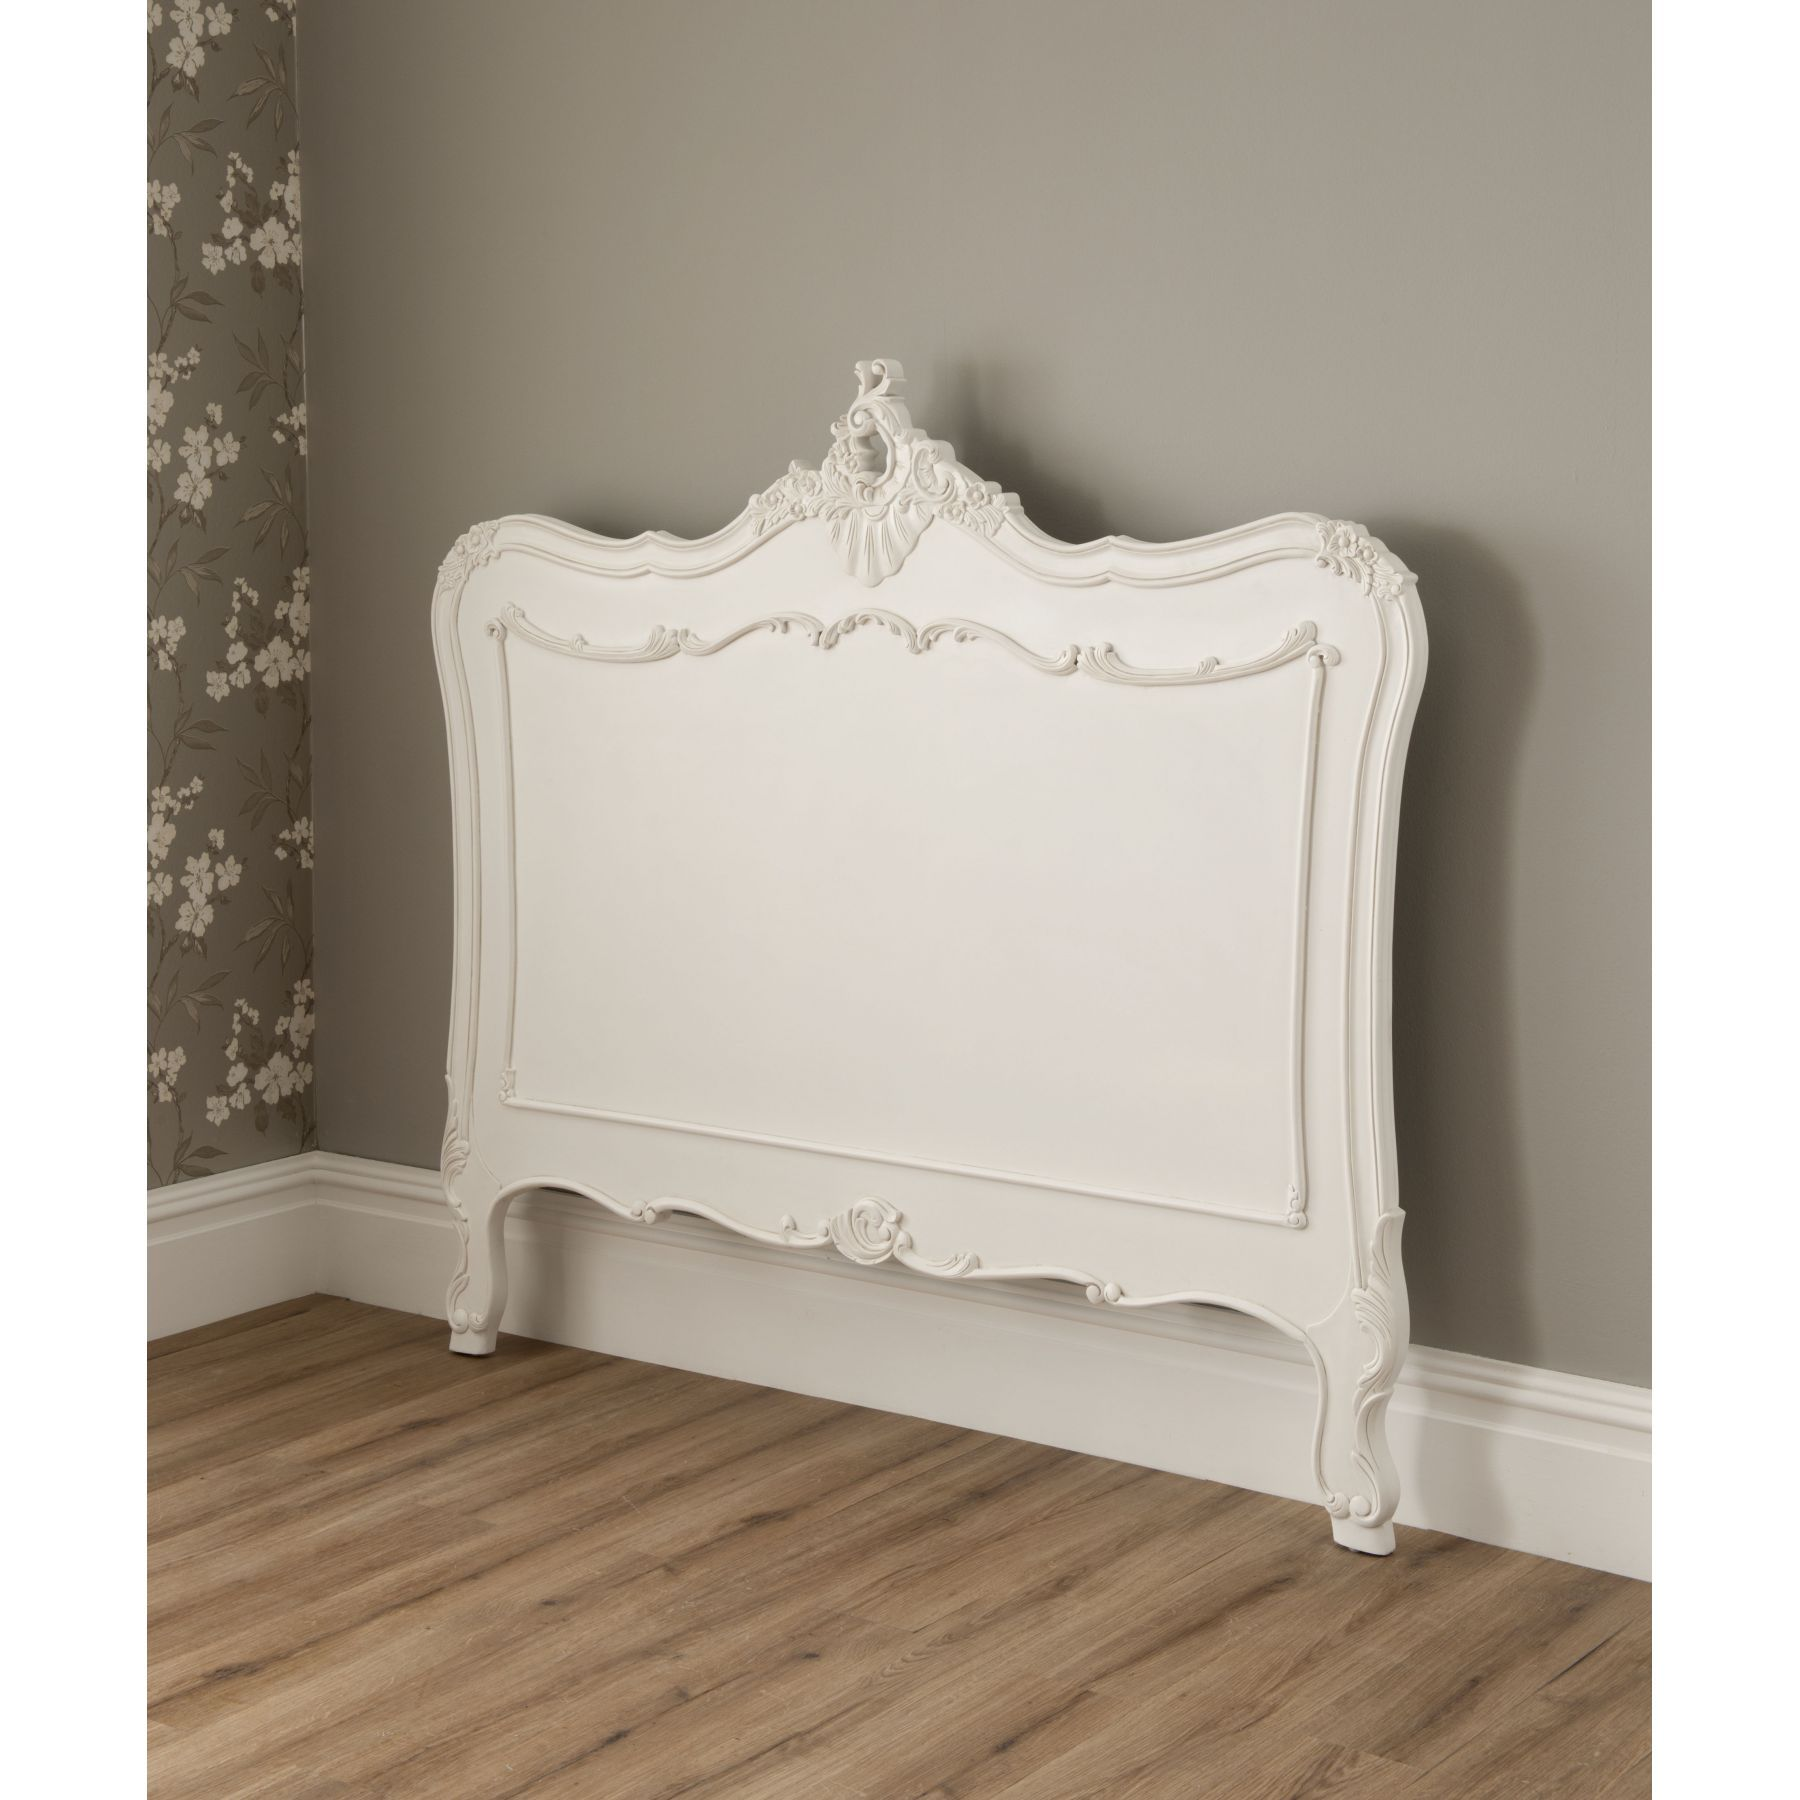 rustic furniture pad in beautiful bedroom service elegant country little recycle chic white aside shabby round with french headboard as nightstand bit homes showcase exciting the